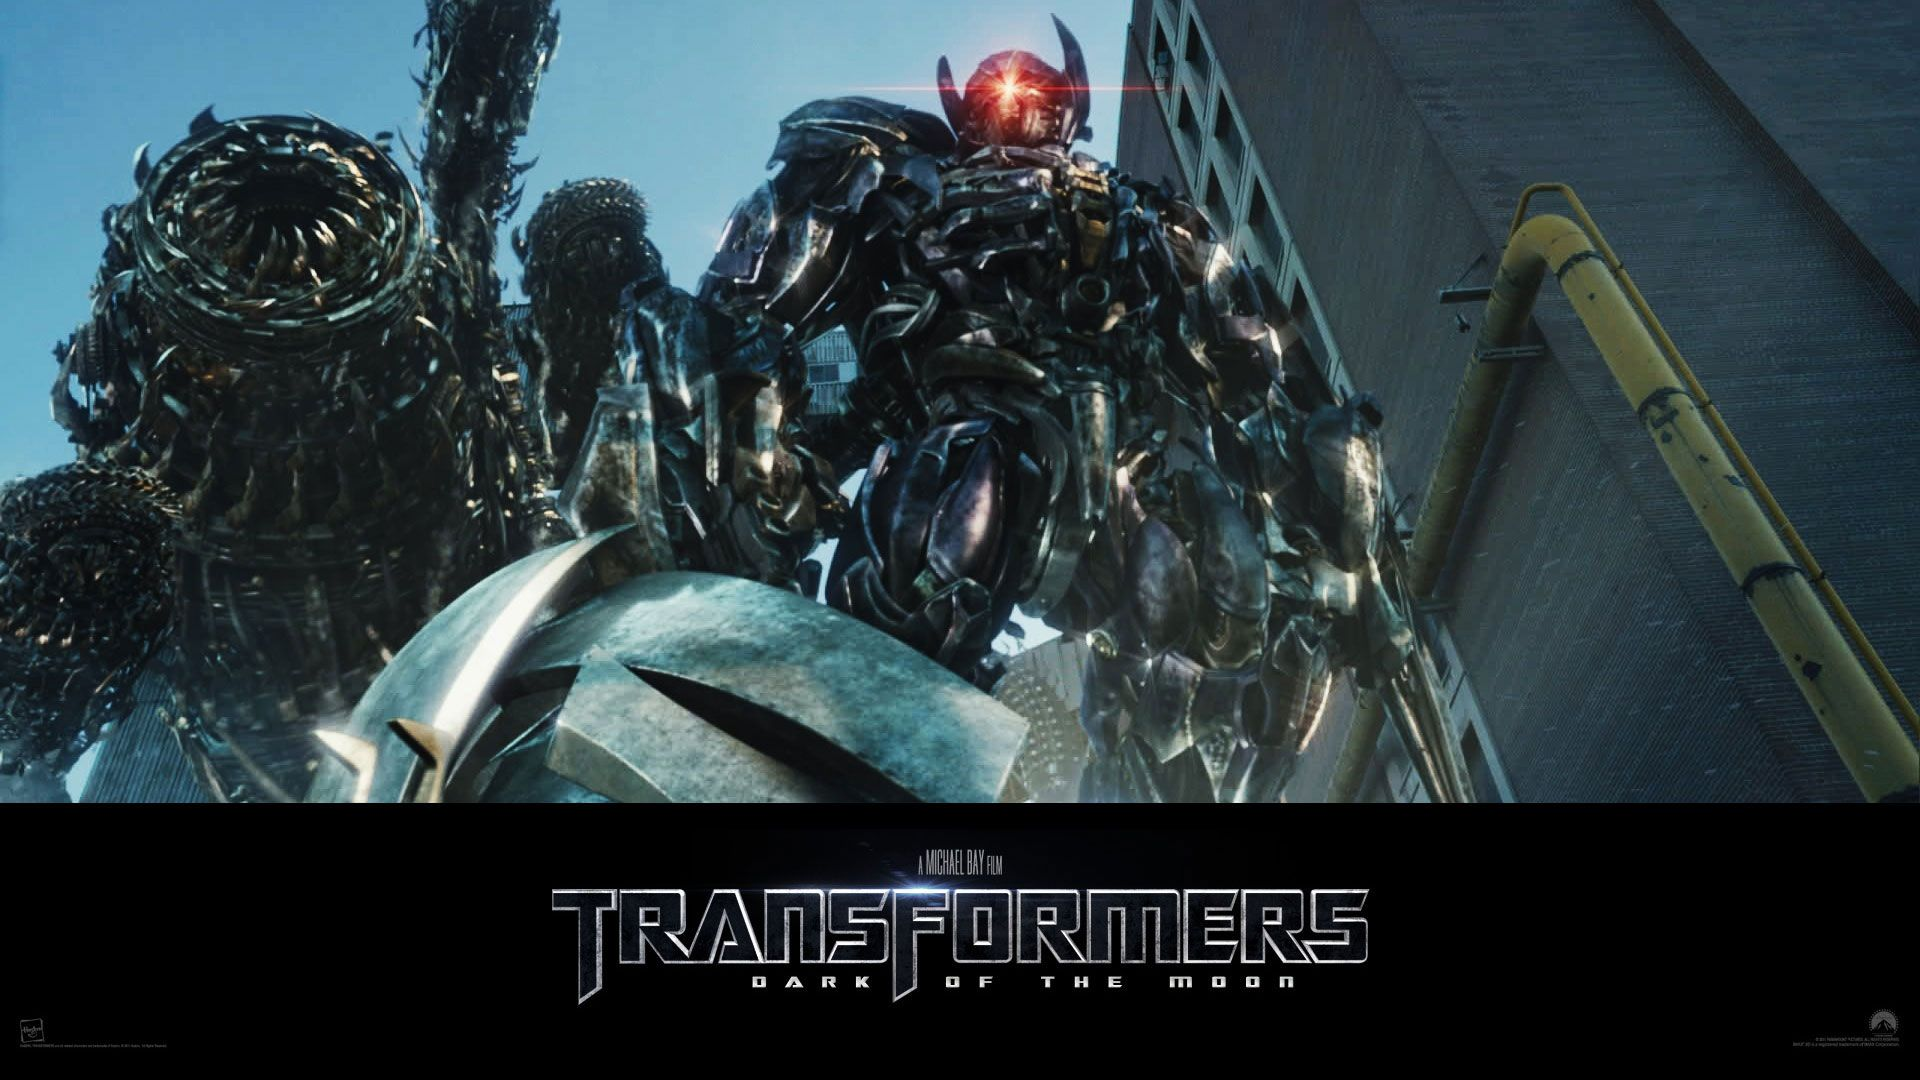 Watch Streaming HD Transformers: Dark of the Moon, starring Shia LaBeouf, Rosie Huntington-Whiteley, Tyrese Gibson, Josh Duhamel. The Autobots learn of a Cybertronian spacecraft hidden on the moon, and race against the Decepticons to reach it and to learn its secrets. #Action #Adventure #Sci-Fi http://play.theatrr.com/play.php?movie=1399103